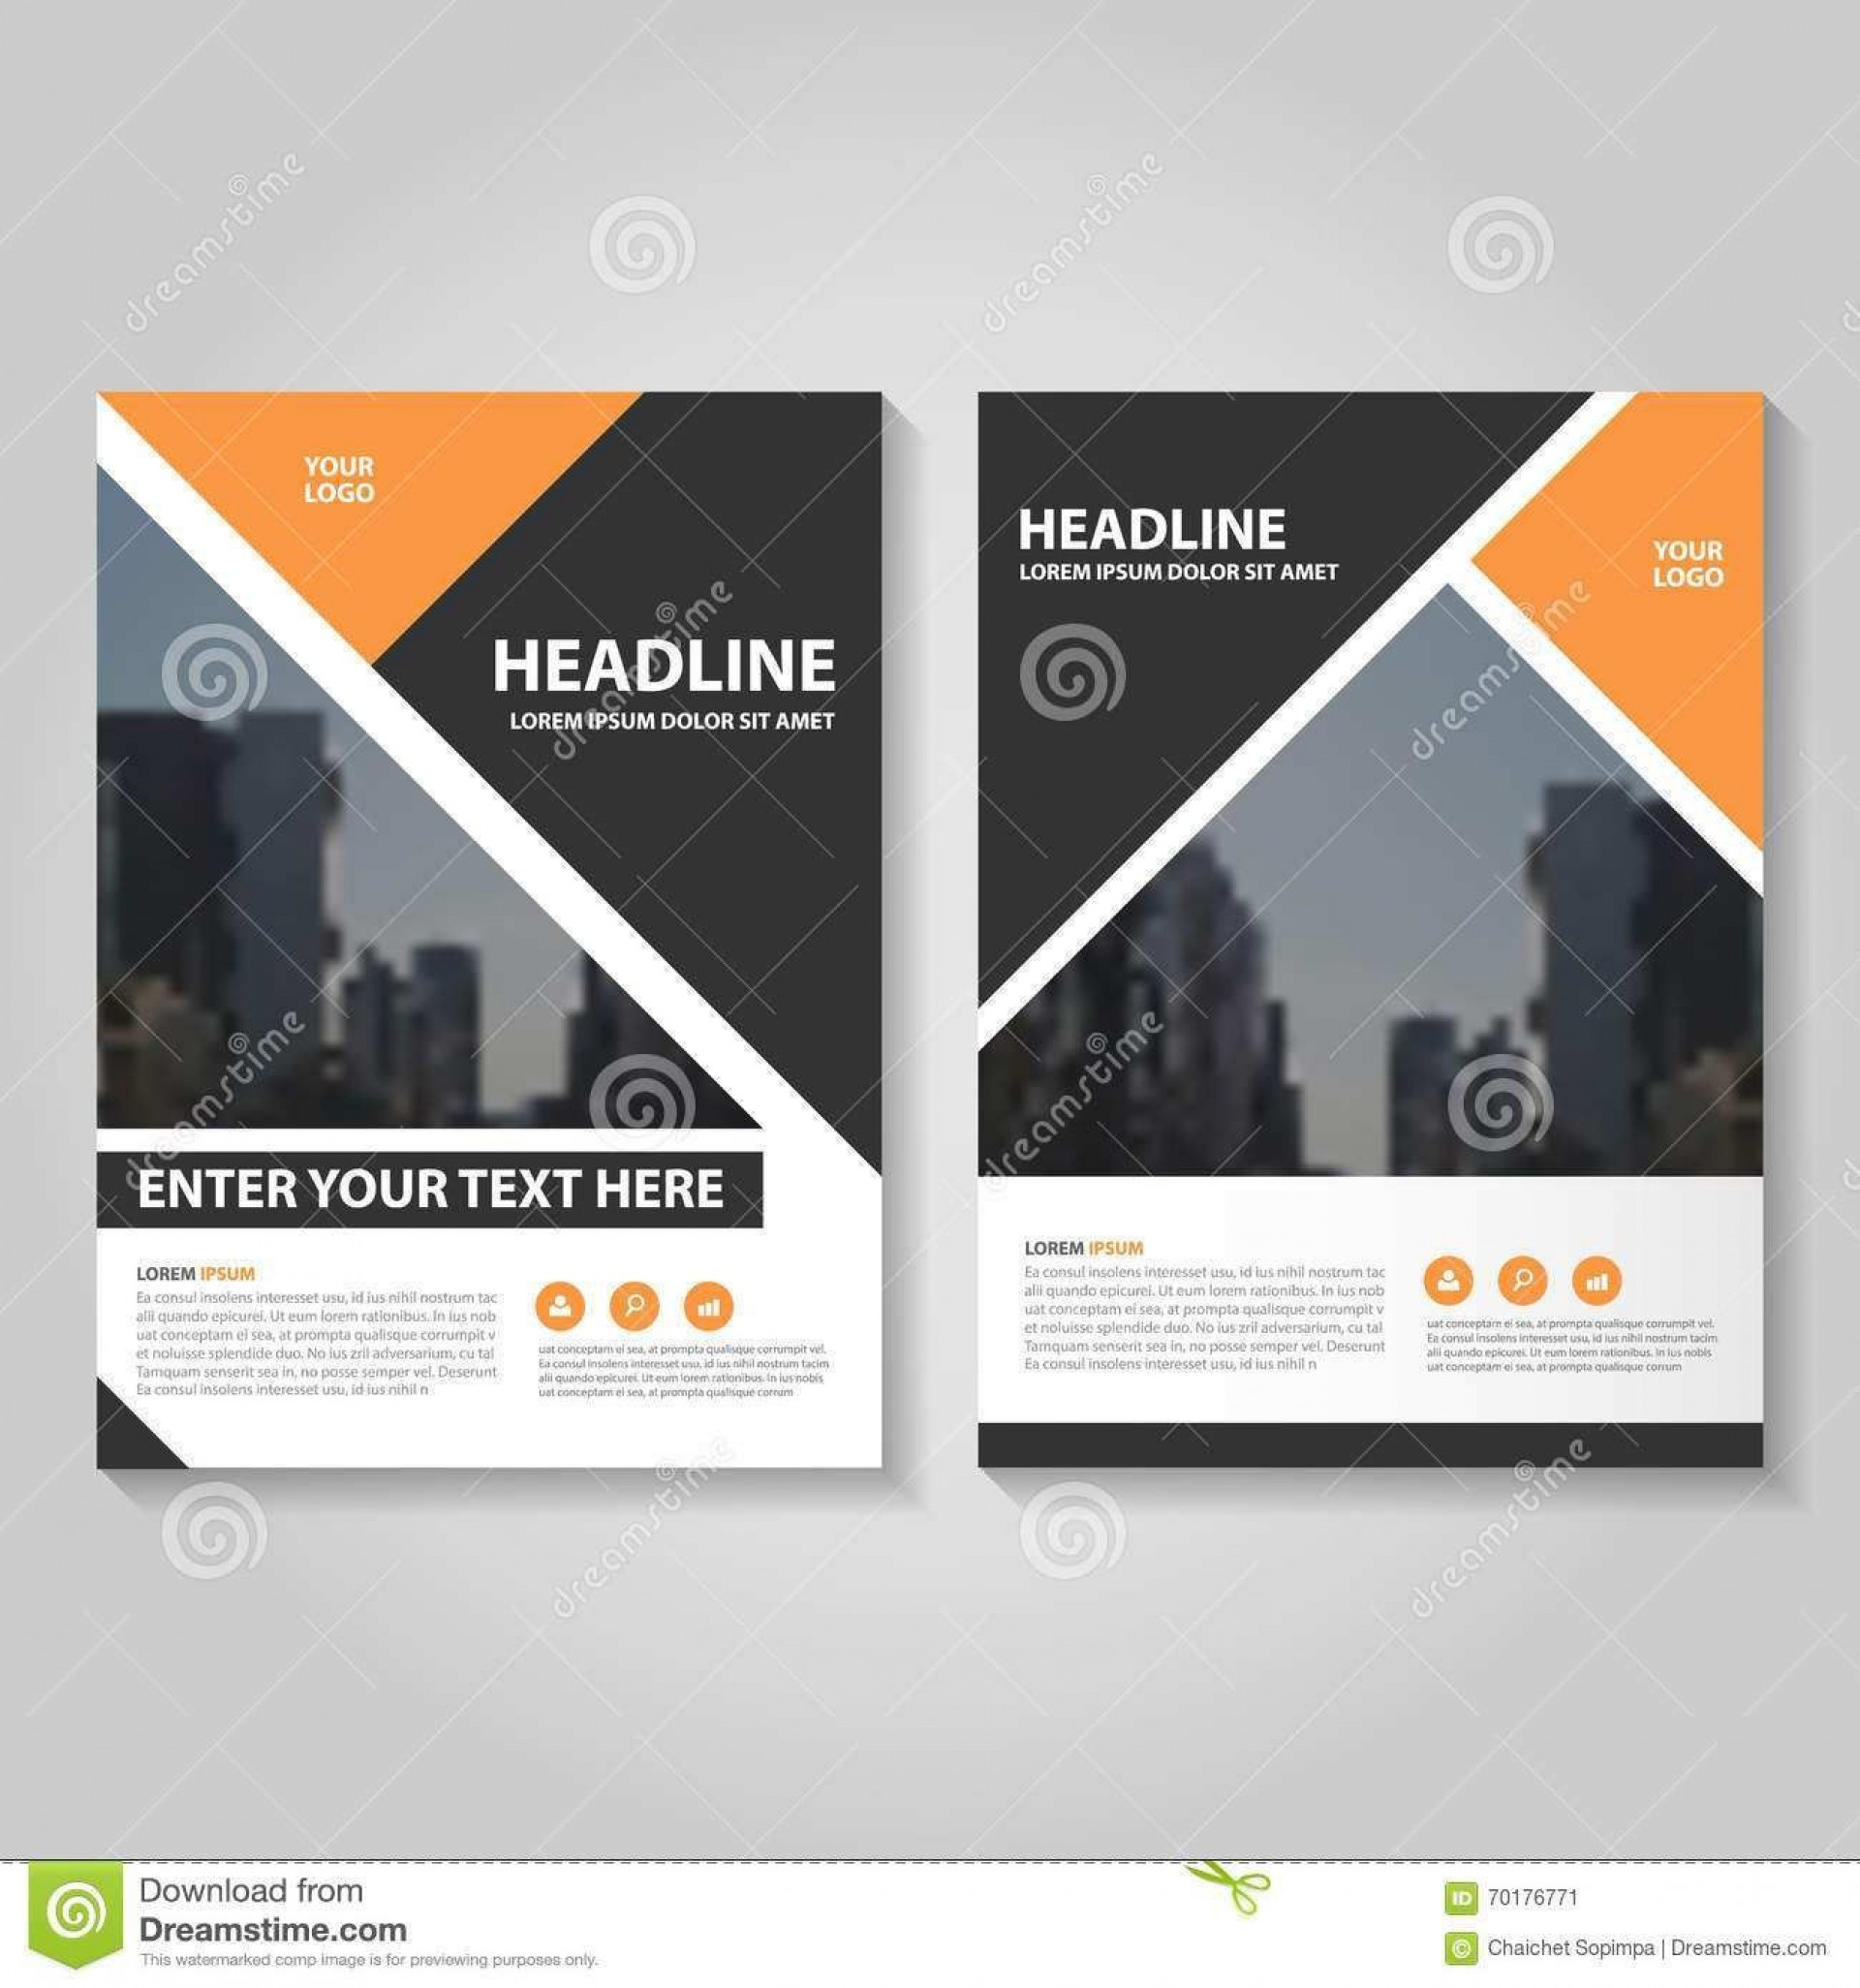 001 Excellent Brochure Template For Wordpad Image  Free1920